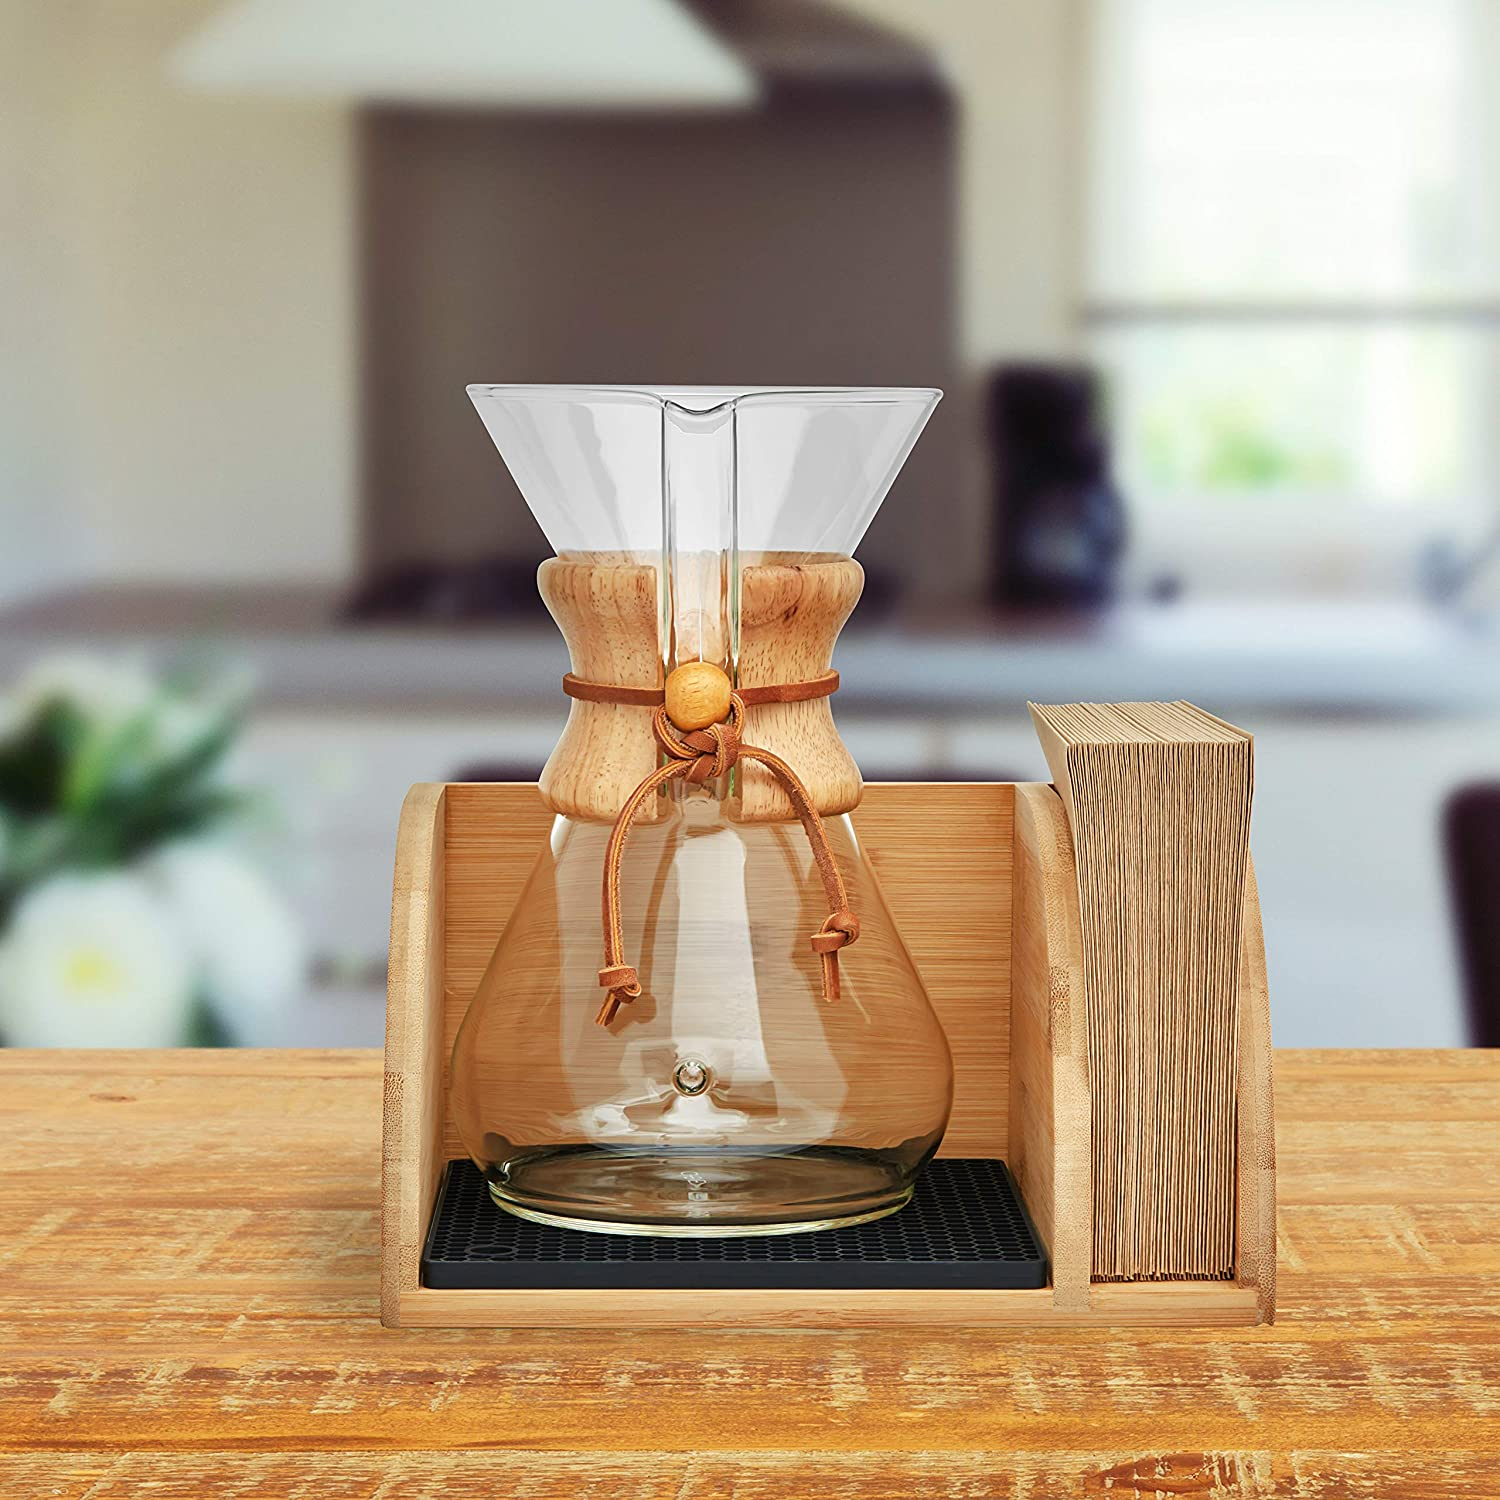 Amazon.com: Hoovy Caddy for Chemex Coffeemaker - Bandeja de ...